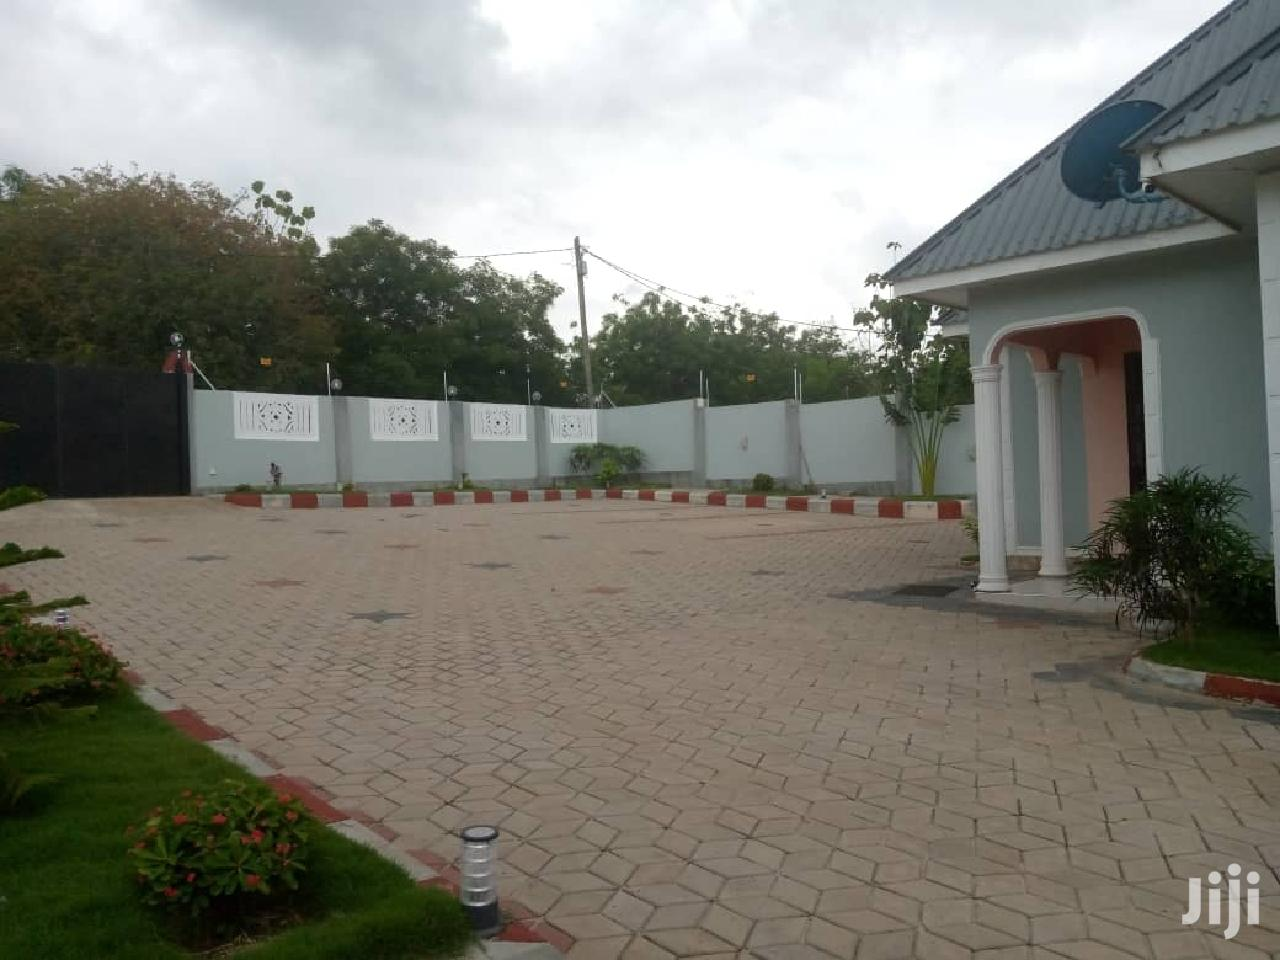 Three Bedroom House In Madale For Sale | Houses & Apartments For Sale for sale in Goba, Kinondoni, Tanzania